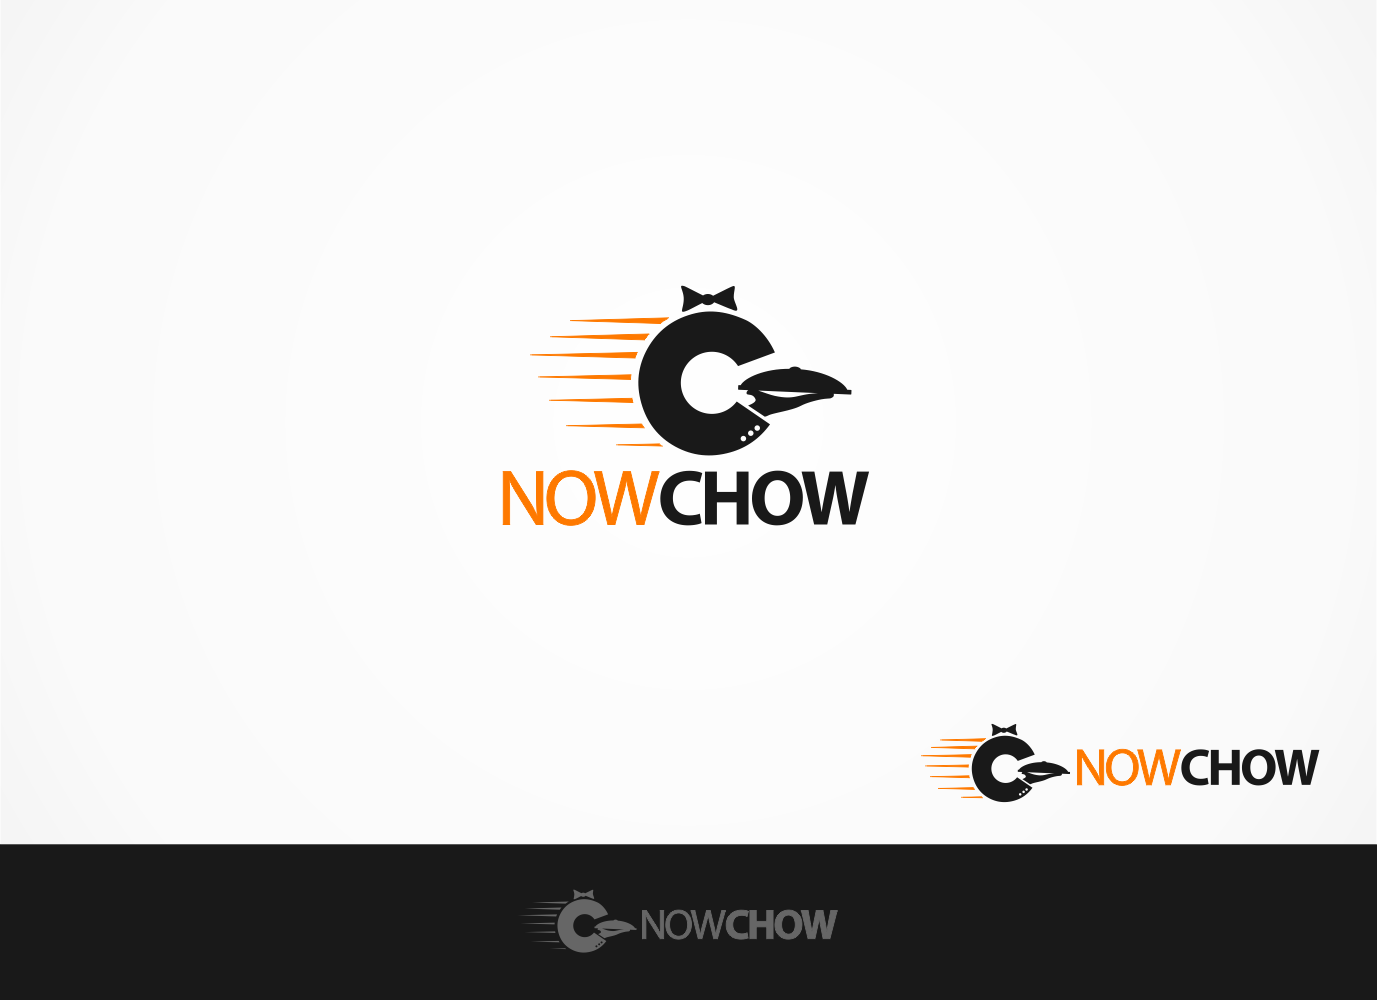 logo for nowchow